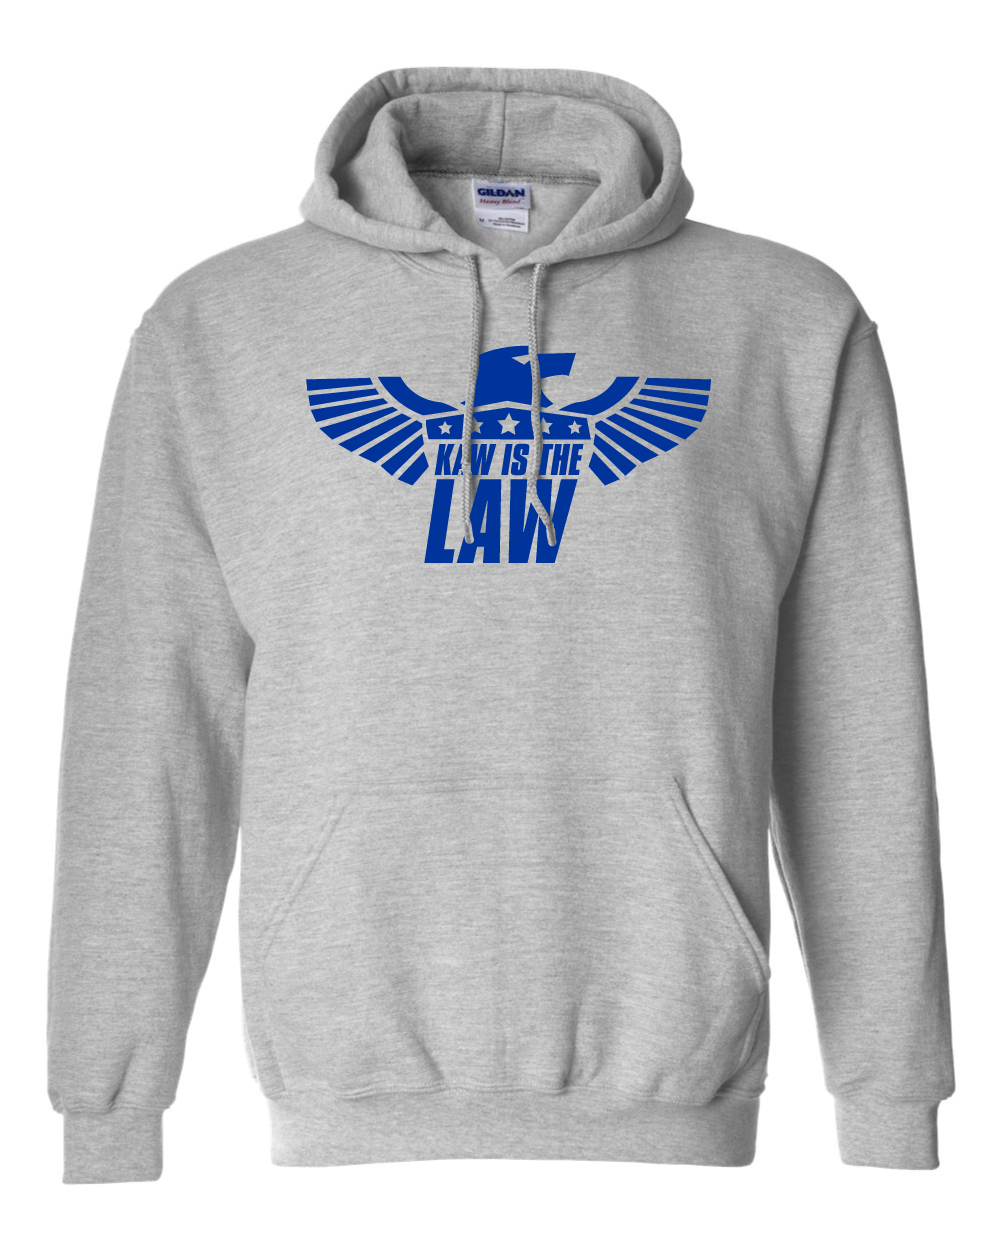 KAW is the LAW - Hoody